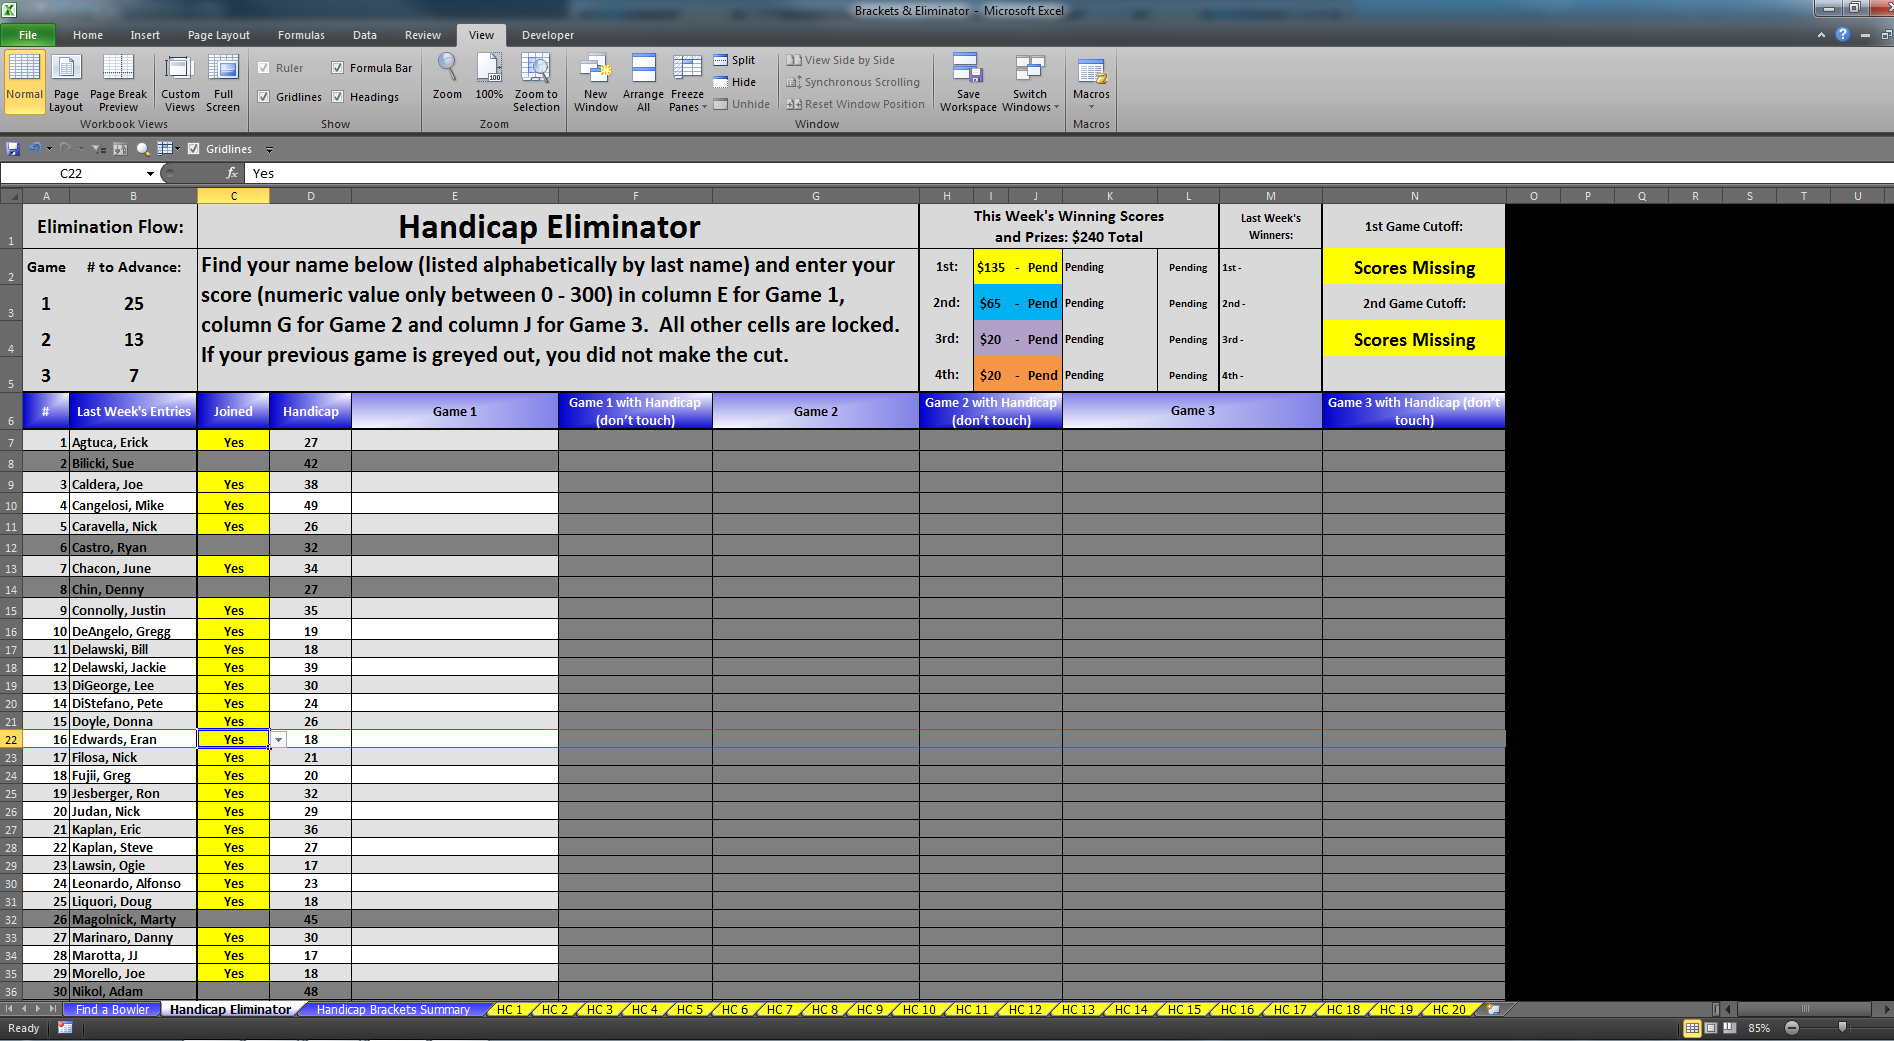 Bowling Prize Fund Spreadsheet With Eliminator  Bracket Excel Software For Sale!  For Sale/wanted Bowling Prize Fund Spreadsheet Printable Spreadshee Printable Spreadshee bowling tournament prize fund spreadsheet